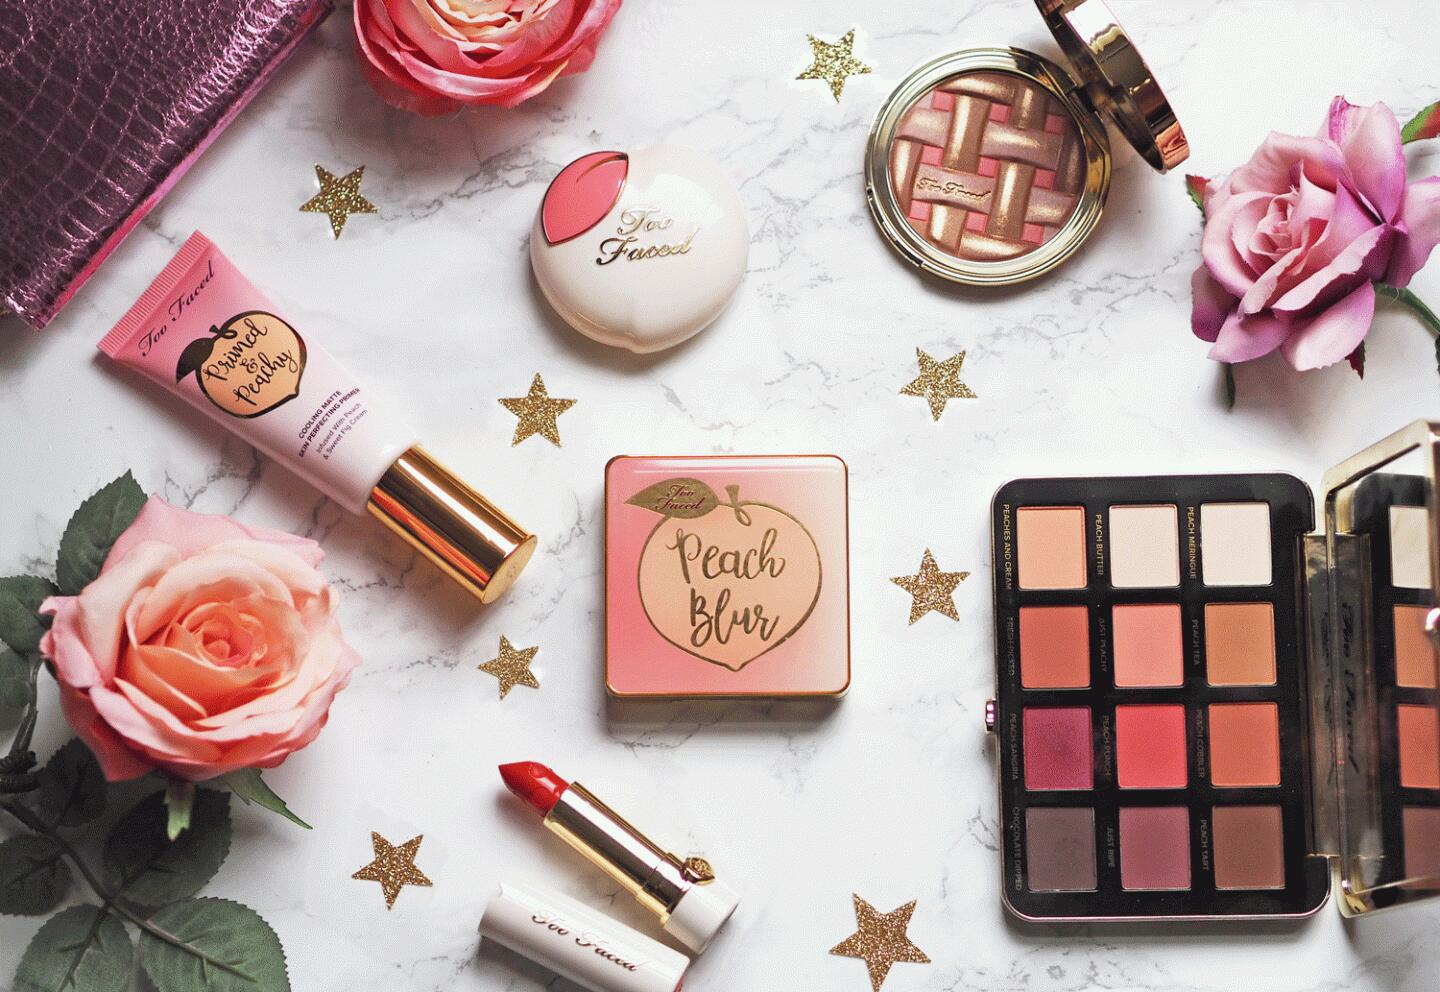 Too Faced Cyber Monday 2020 1 - Too Faced Cosmetics Cyber Monday 2020